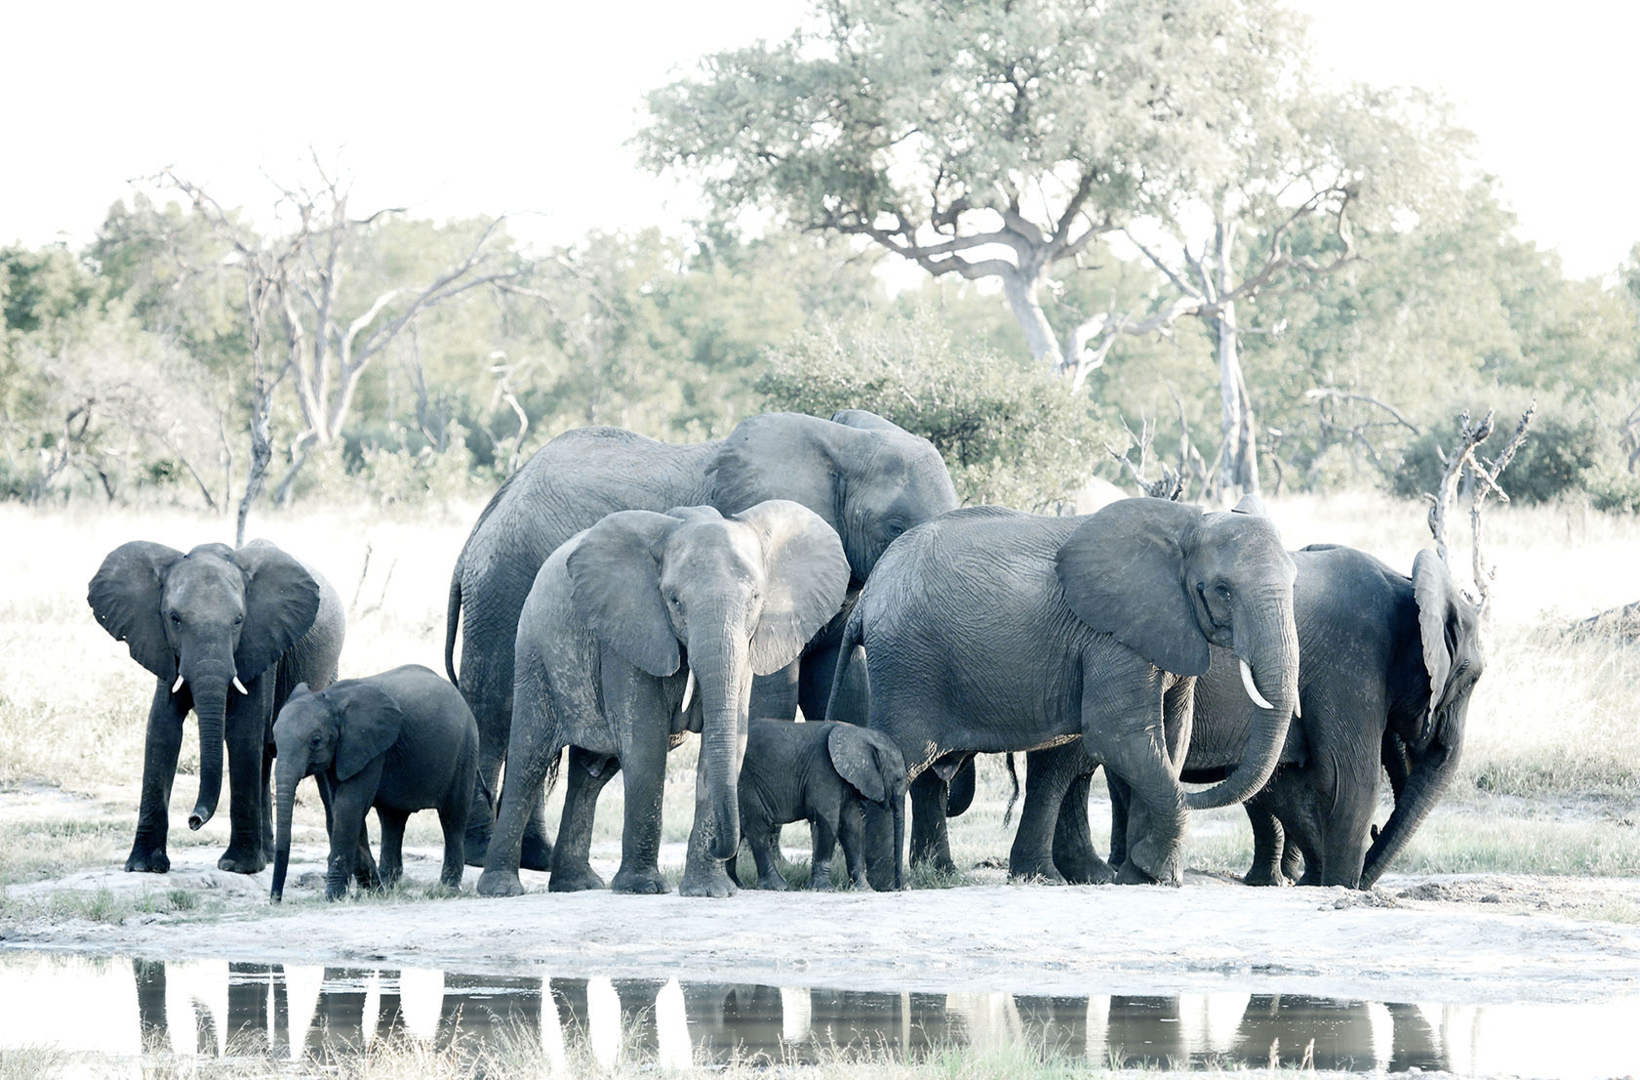 A herd of African elephants gather at Khwai river Botswana to water themselves and cool off in the midday heat